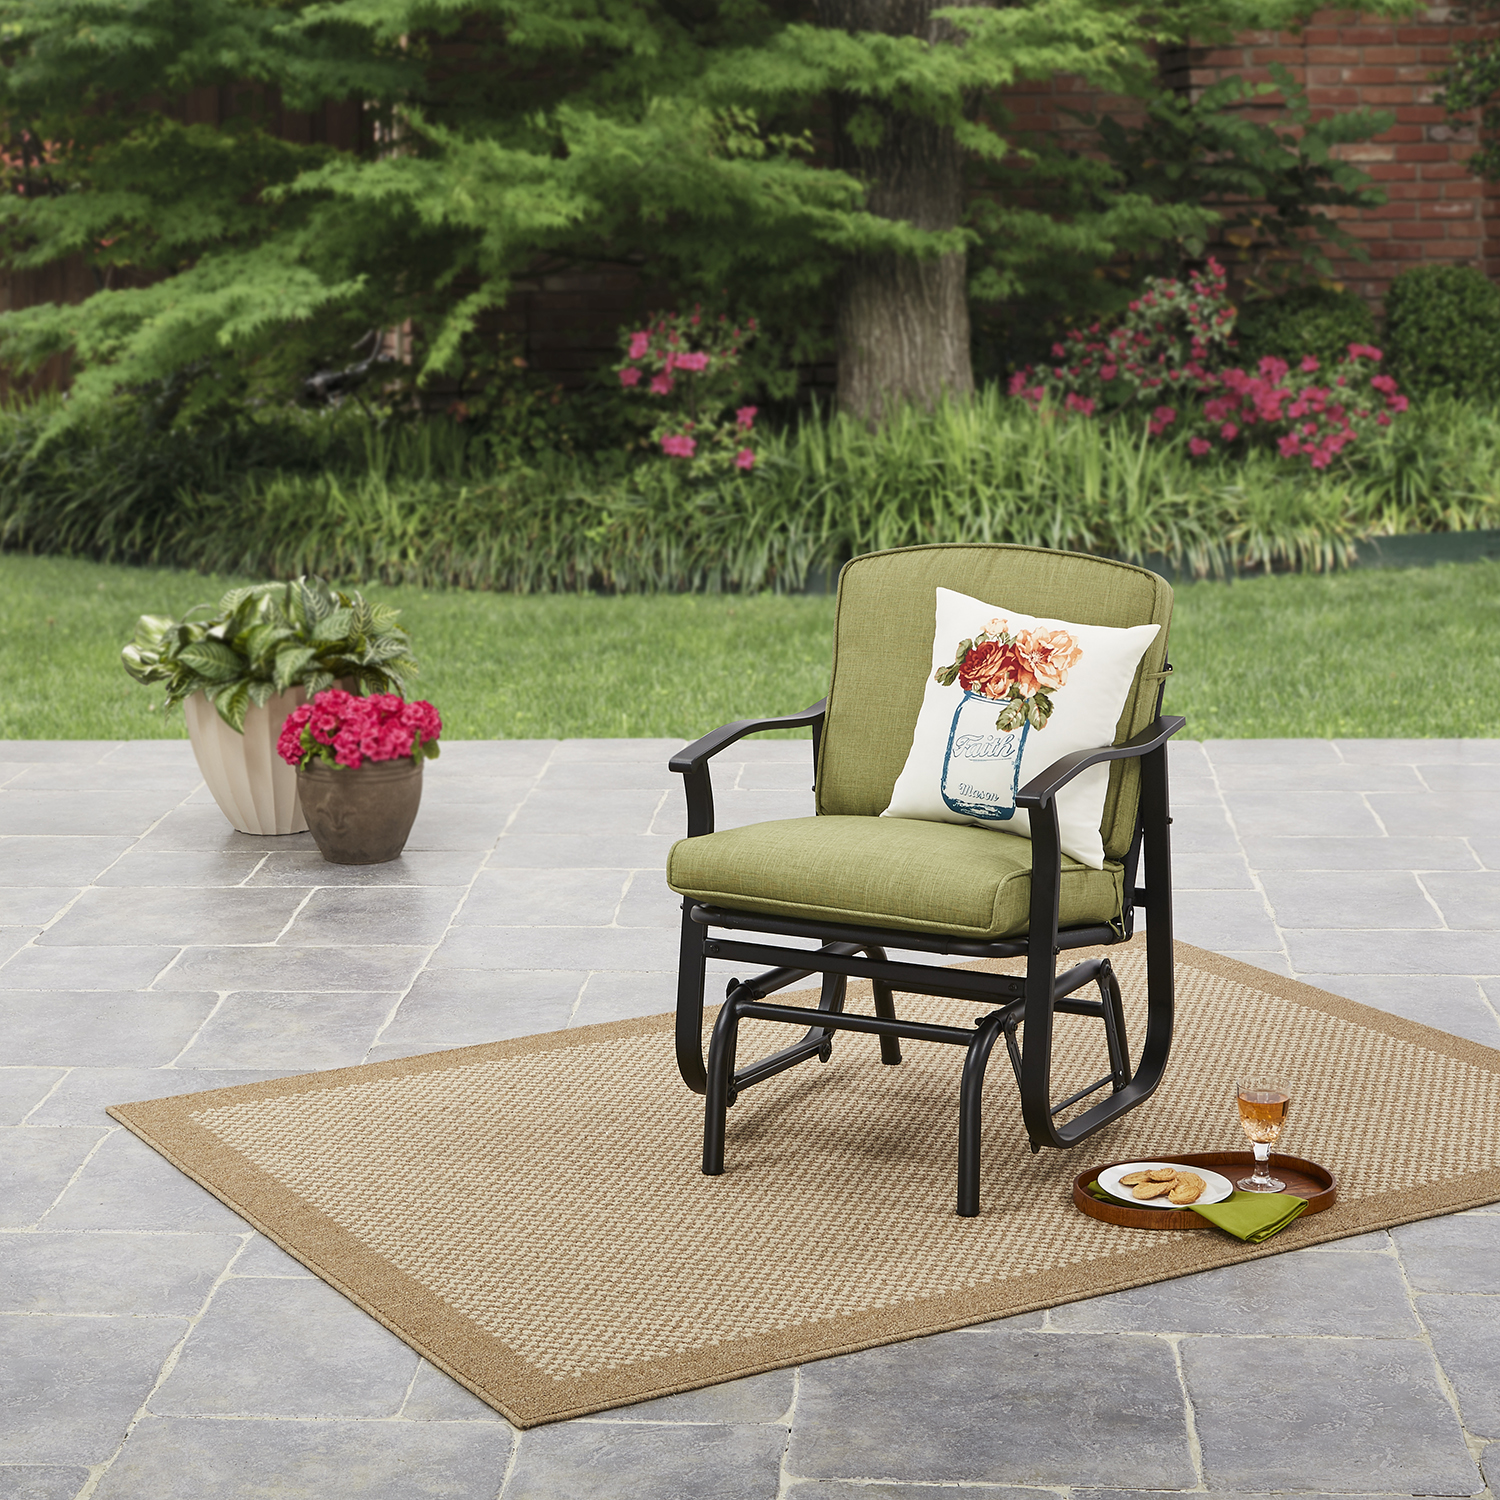 Mainstays Belden Park Outdoor Glider Chair - Green